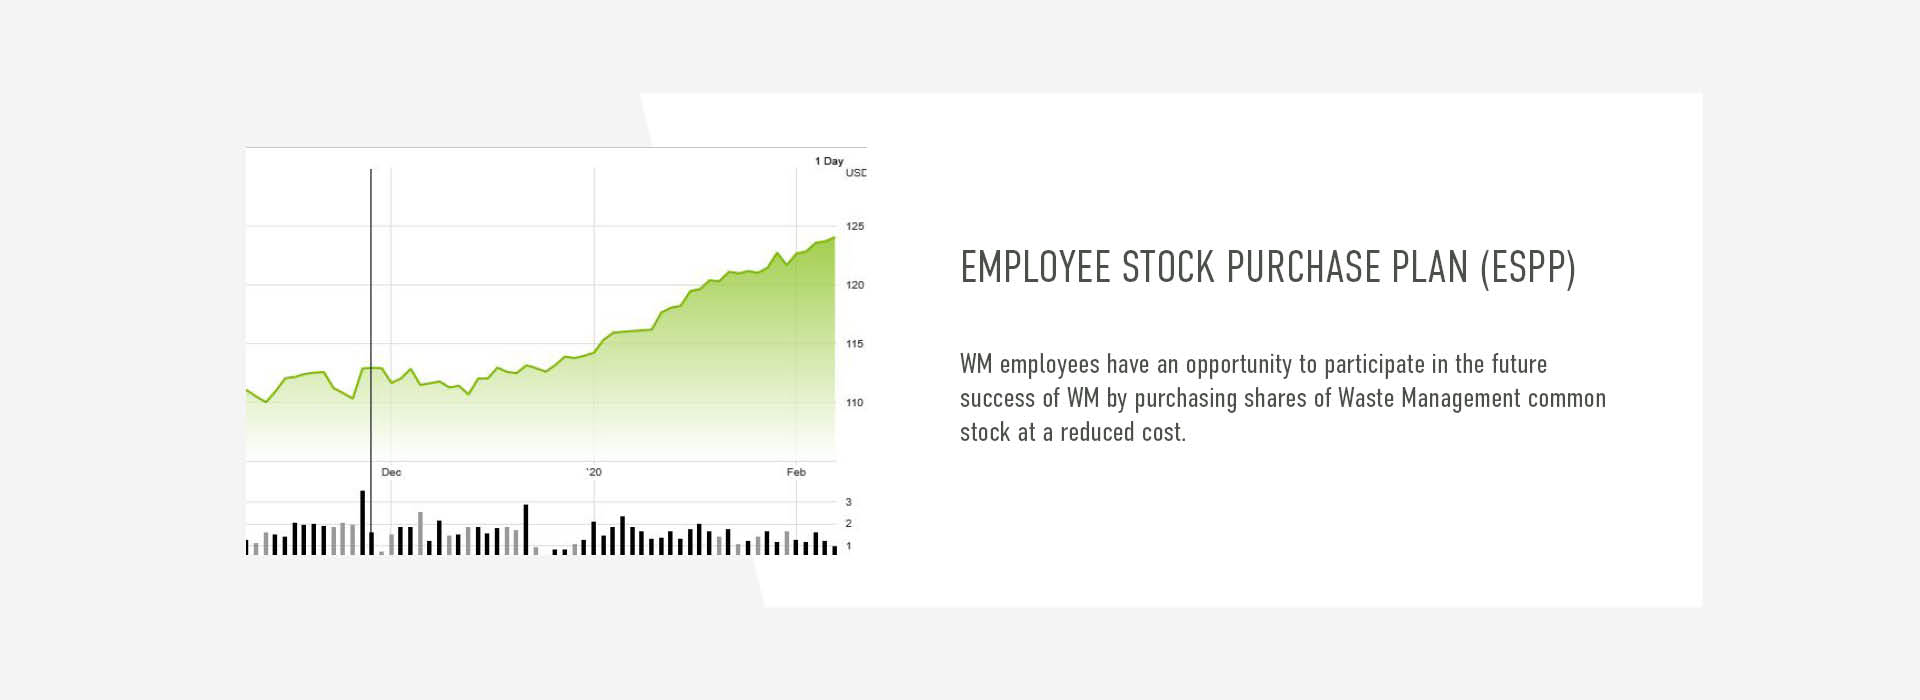 WM employees have an opportunity to participate in the future  success of WM by purchasing shares of Waste Management common stock at a reduced cost.